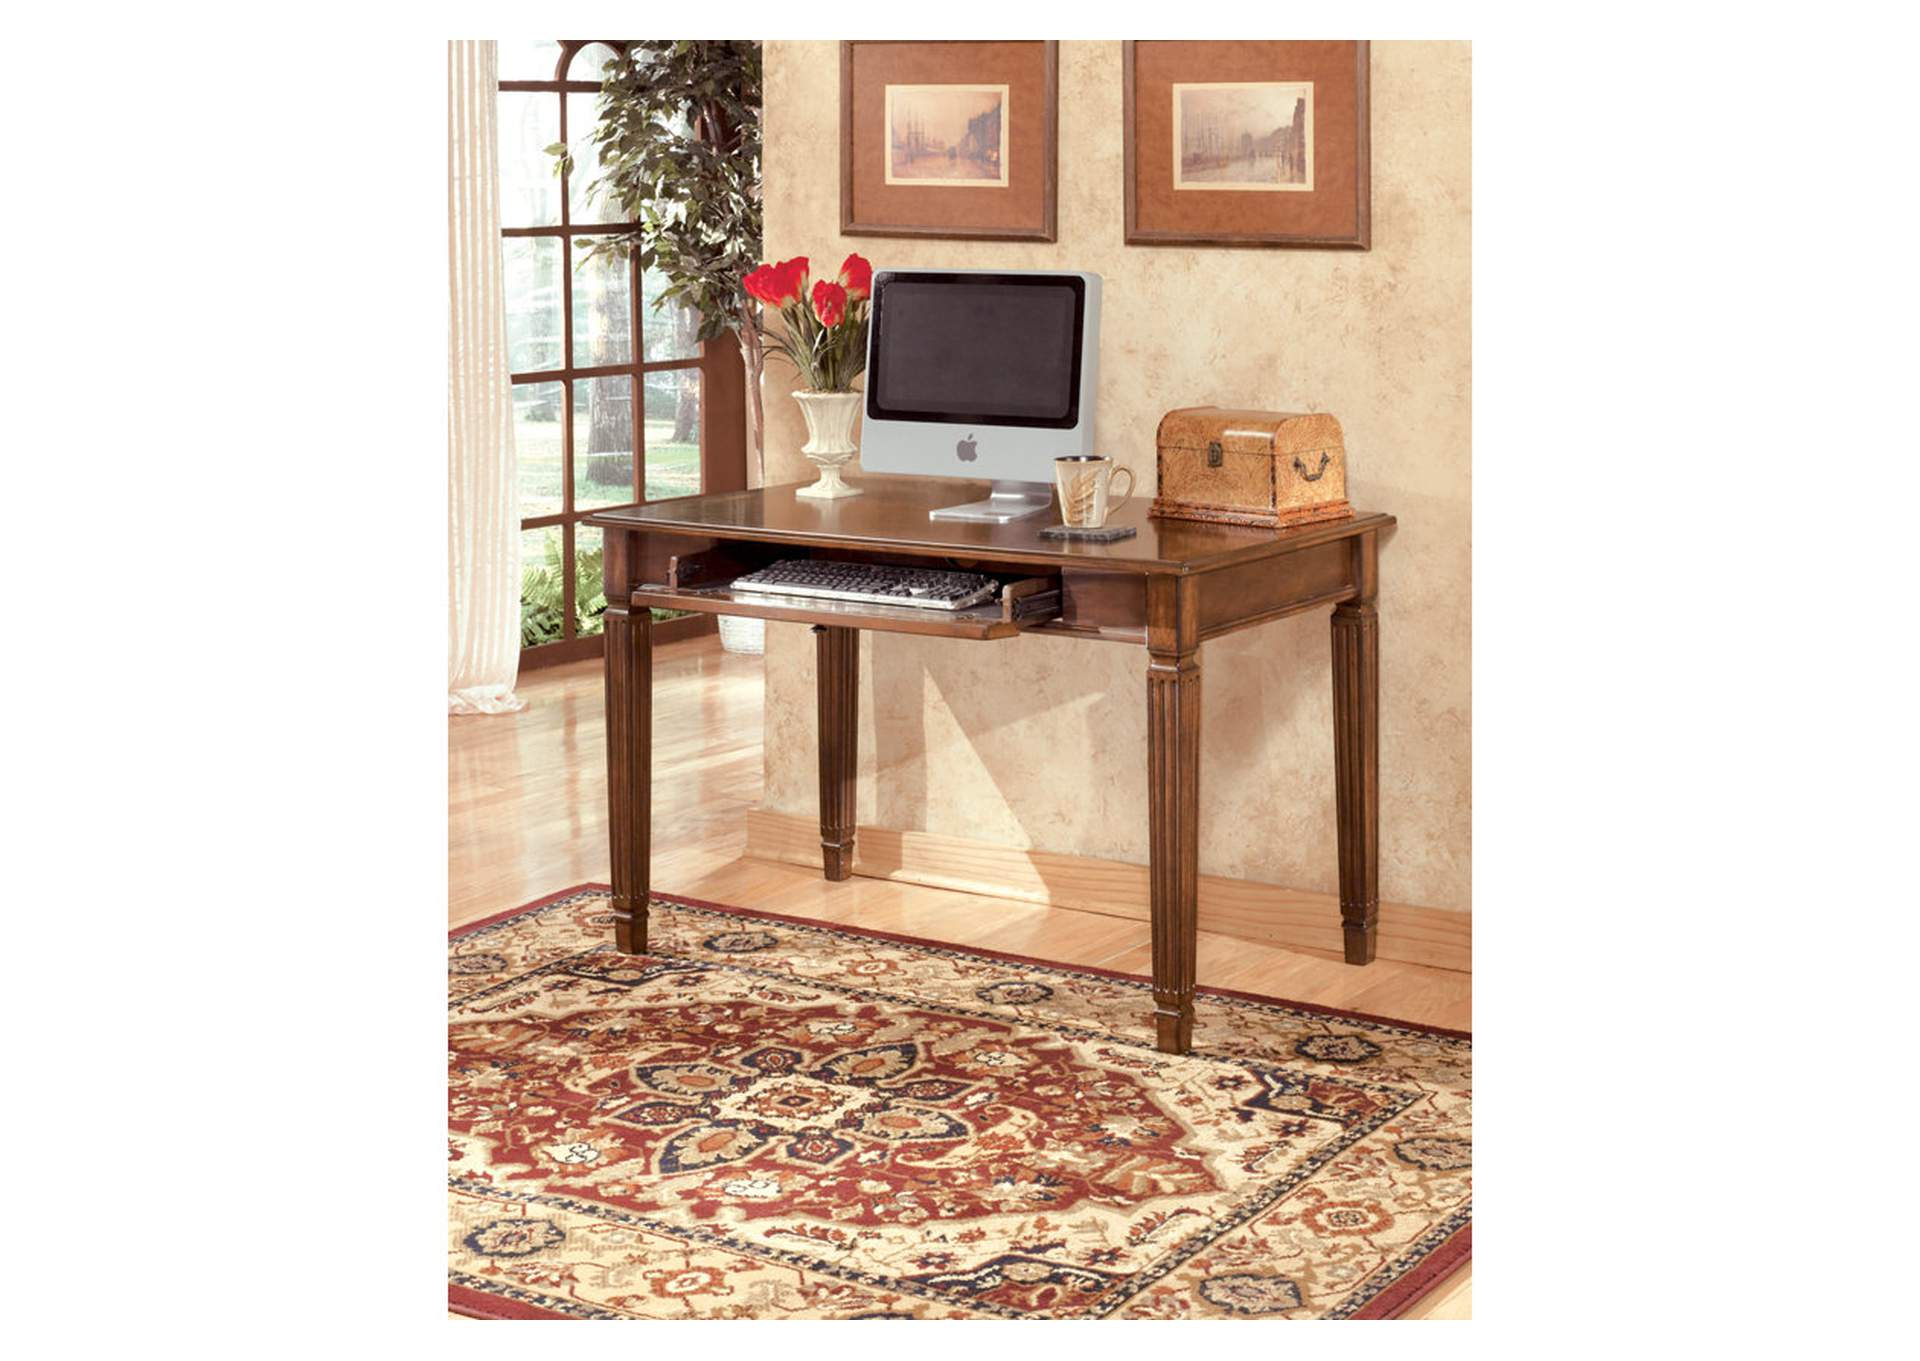 Hamlyn Medium Brown Small Leg Desk,48 Hour Quick Ship